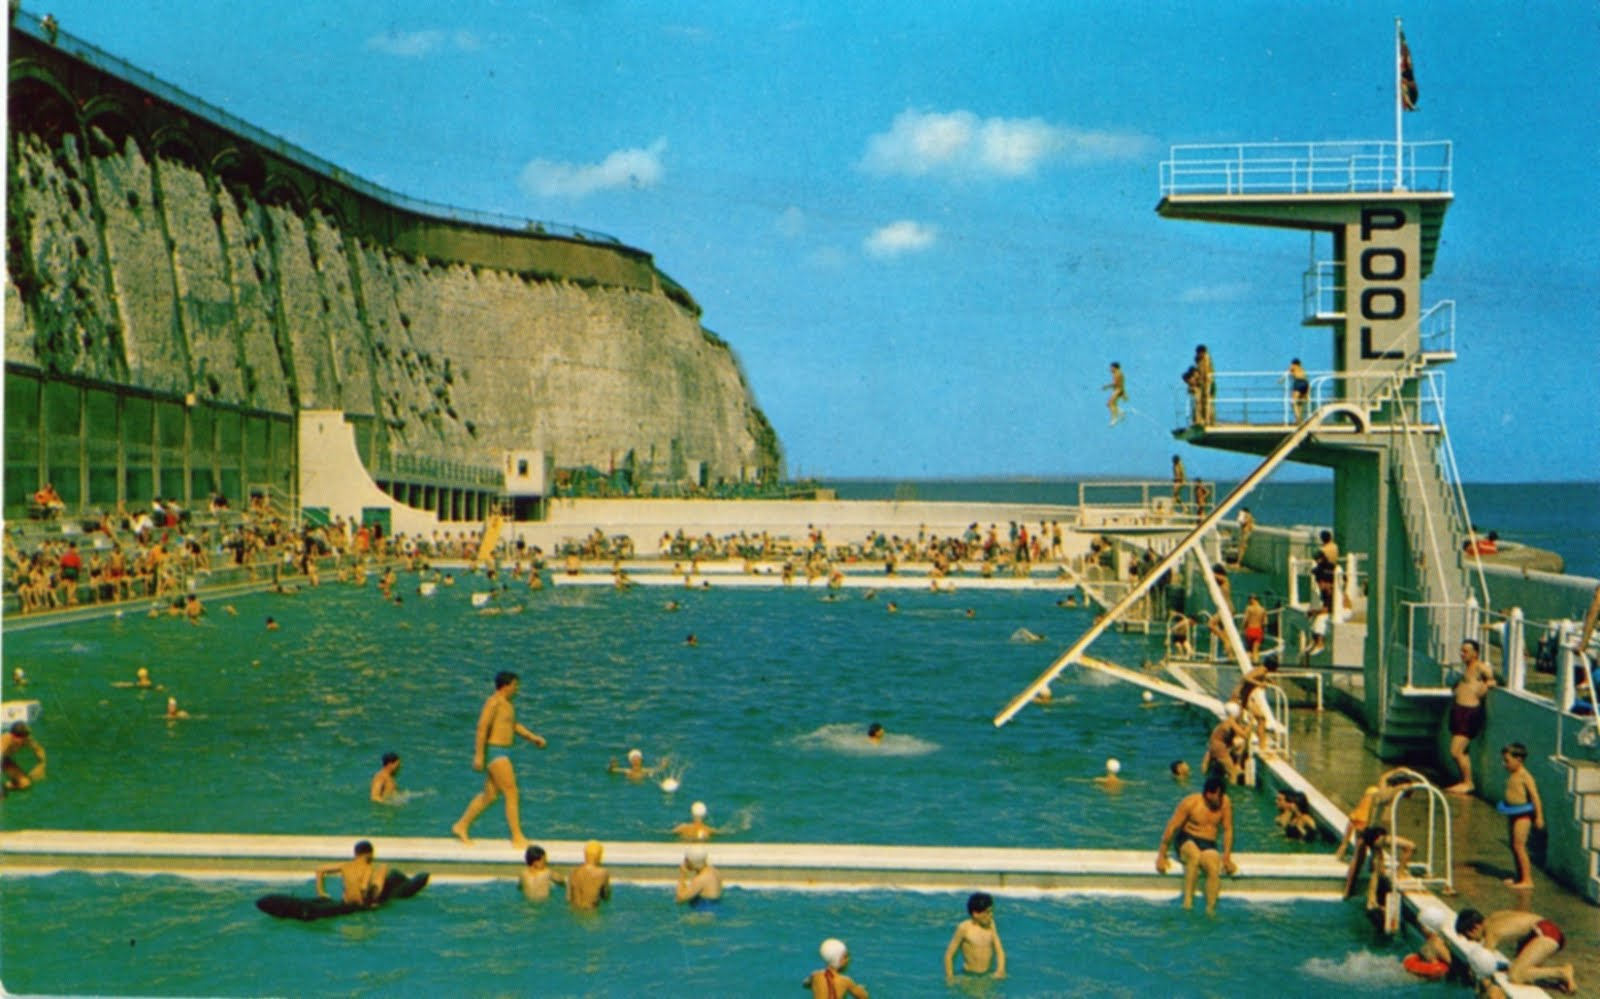 Thanetonline In At The Deep End Ramsgate Marina Bathing Pool Pictures And Some Thoughts